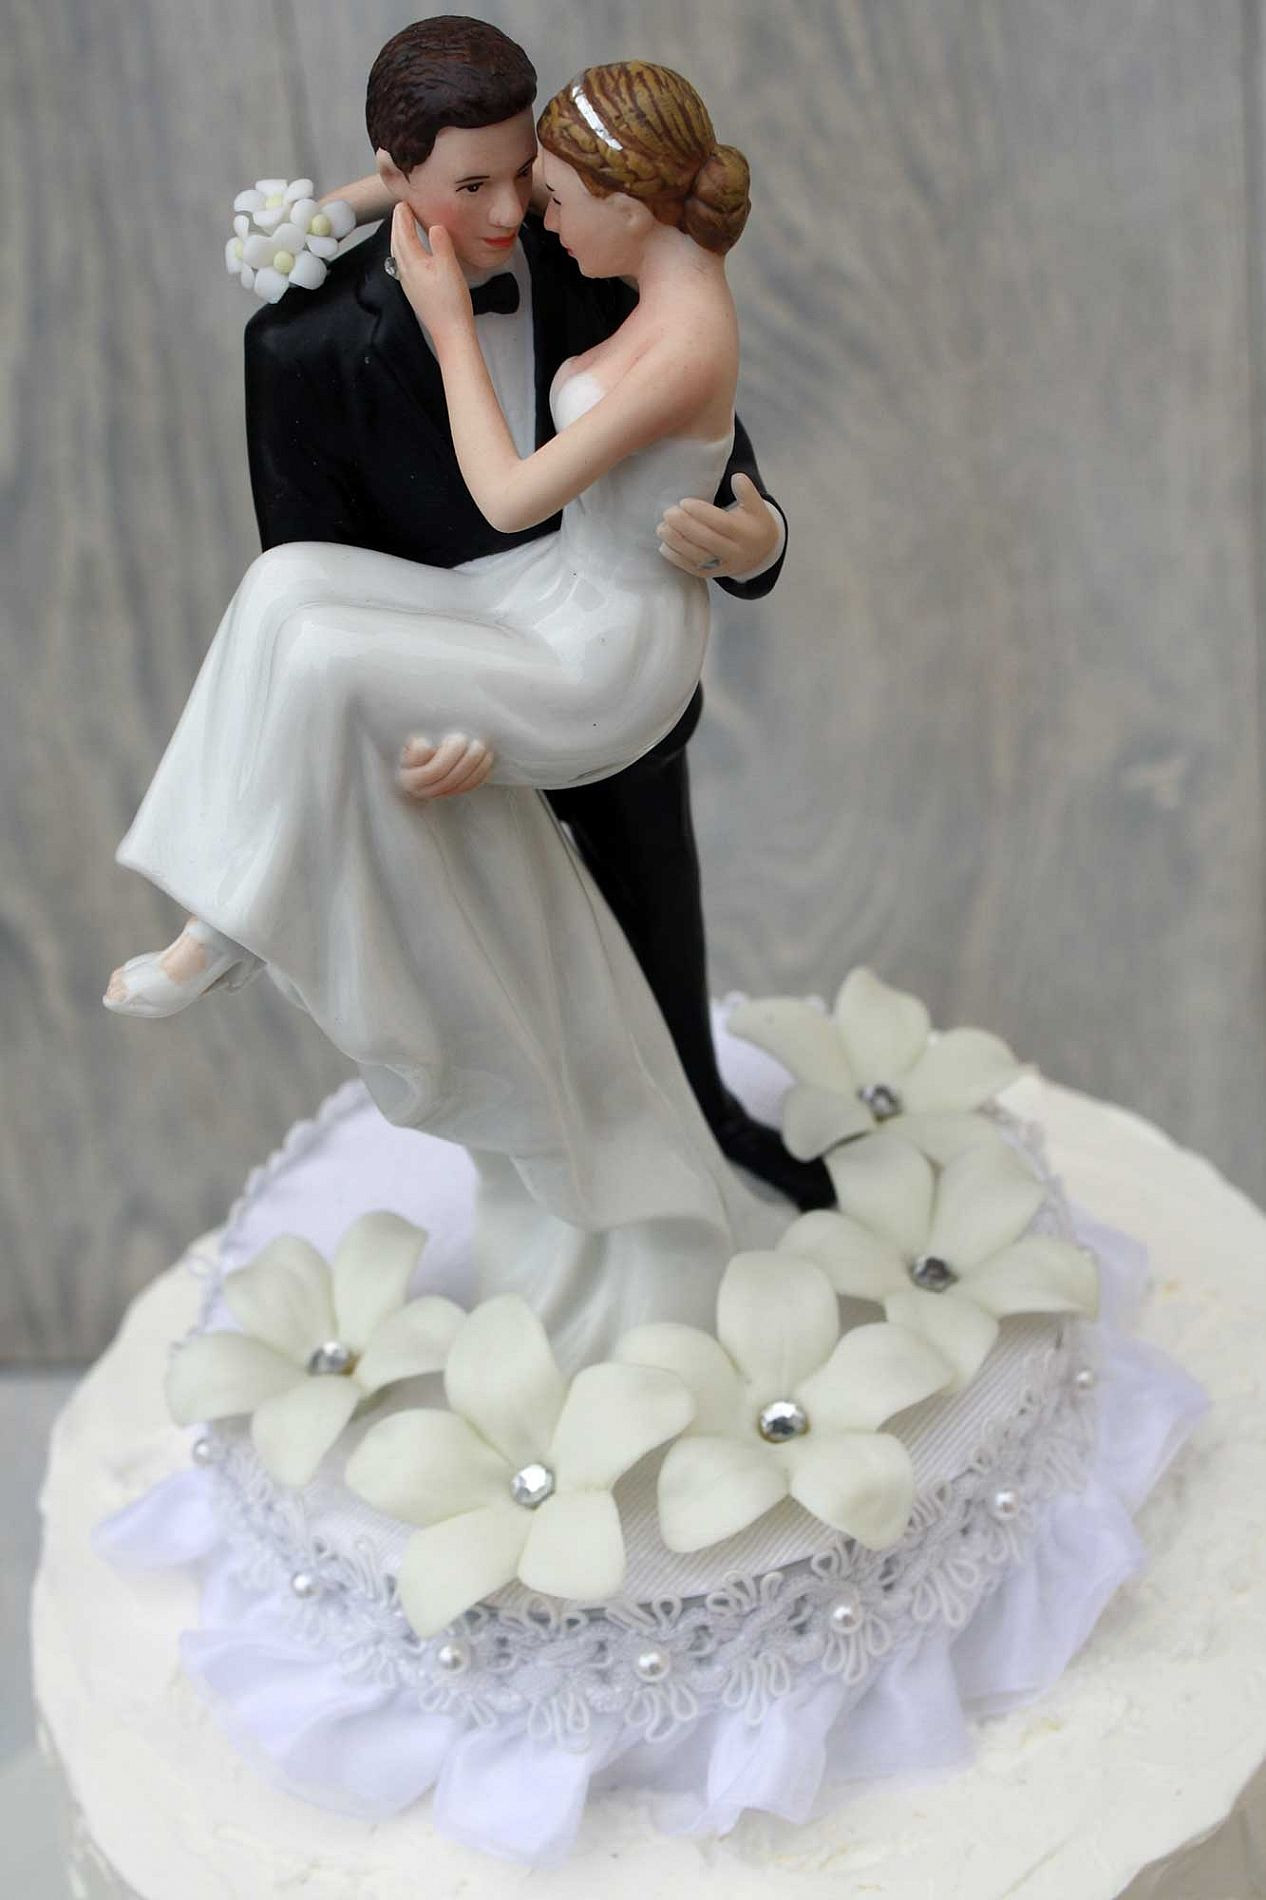 Bride And Groom Toppers For Wedding Cakes  Stephanotis Groom Holding the Bride Wedding Cake Topper